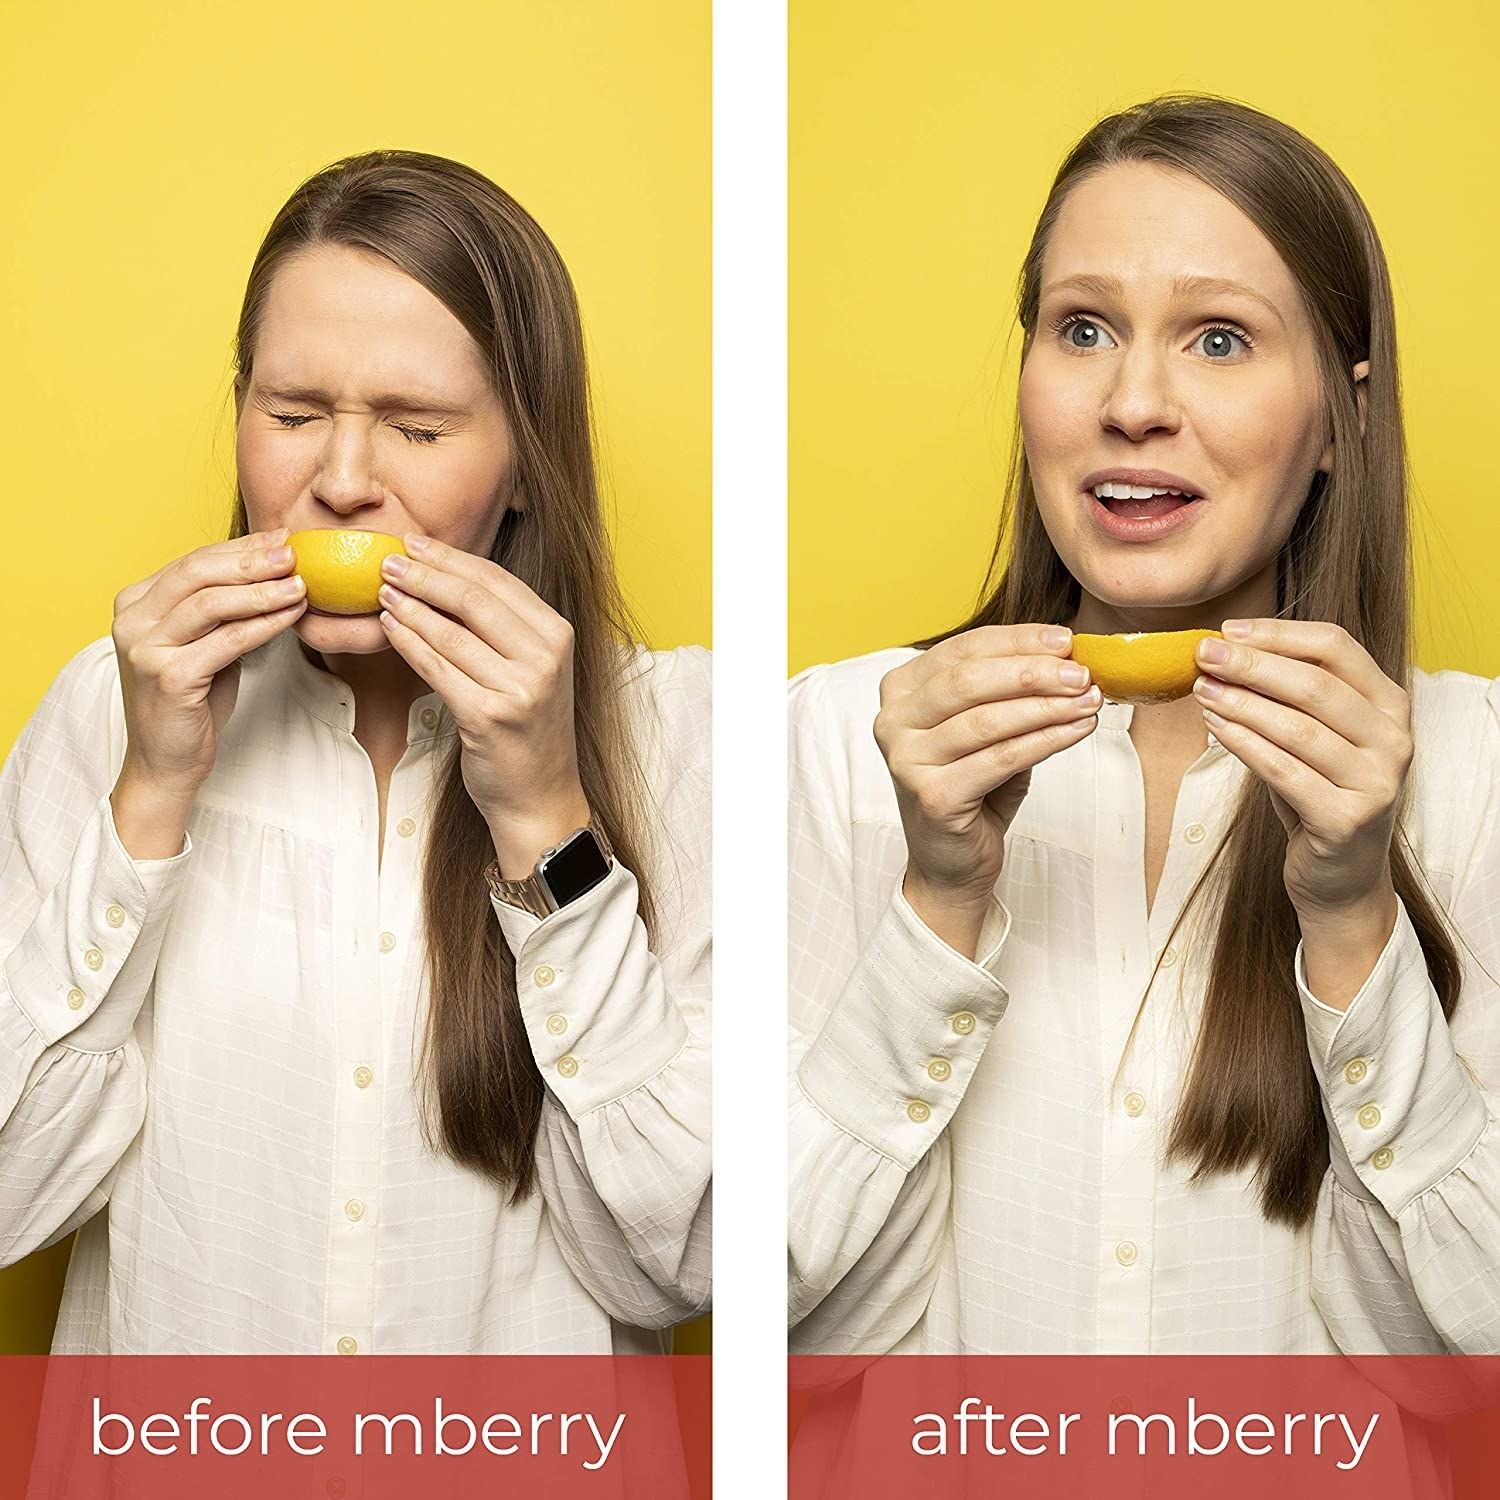 Model wincing as they eat a sour lemon before eating the tablets, and then smiling while eating the lemon after eating the tablet